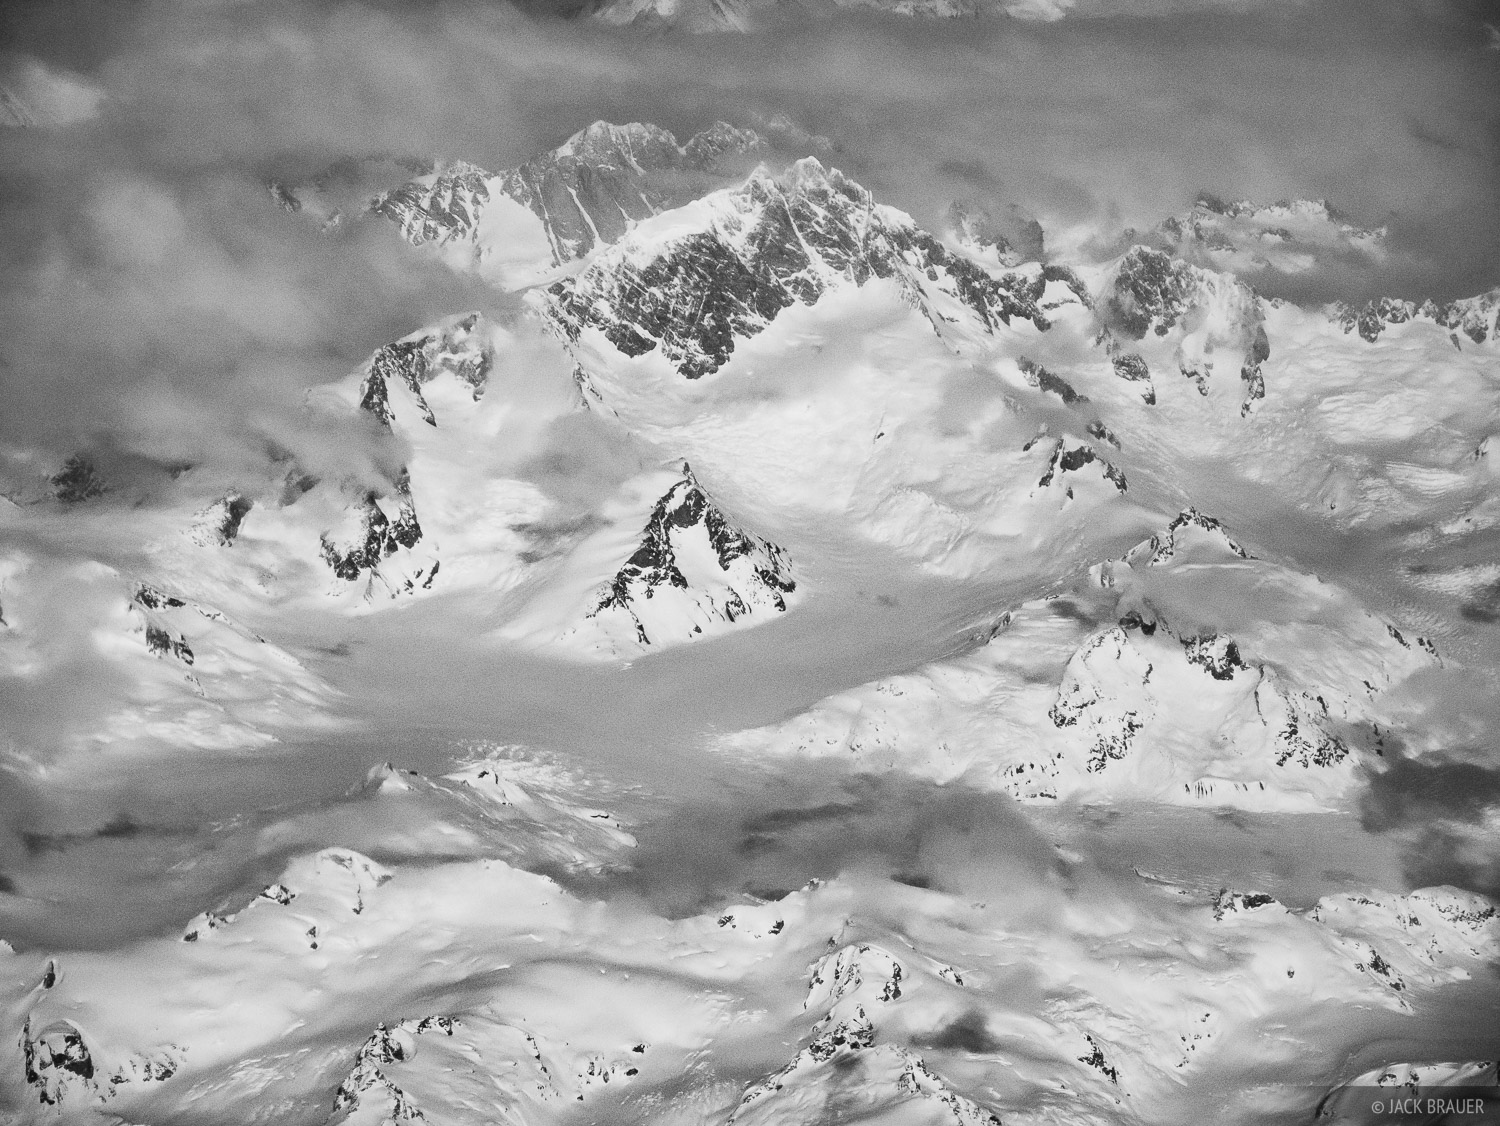 British Columbia,Canada,Mount Waddington,aerial,bw, Coastal Range, photo